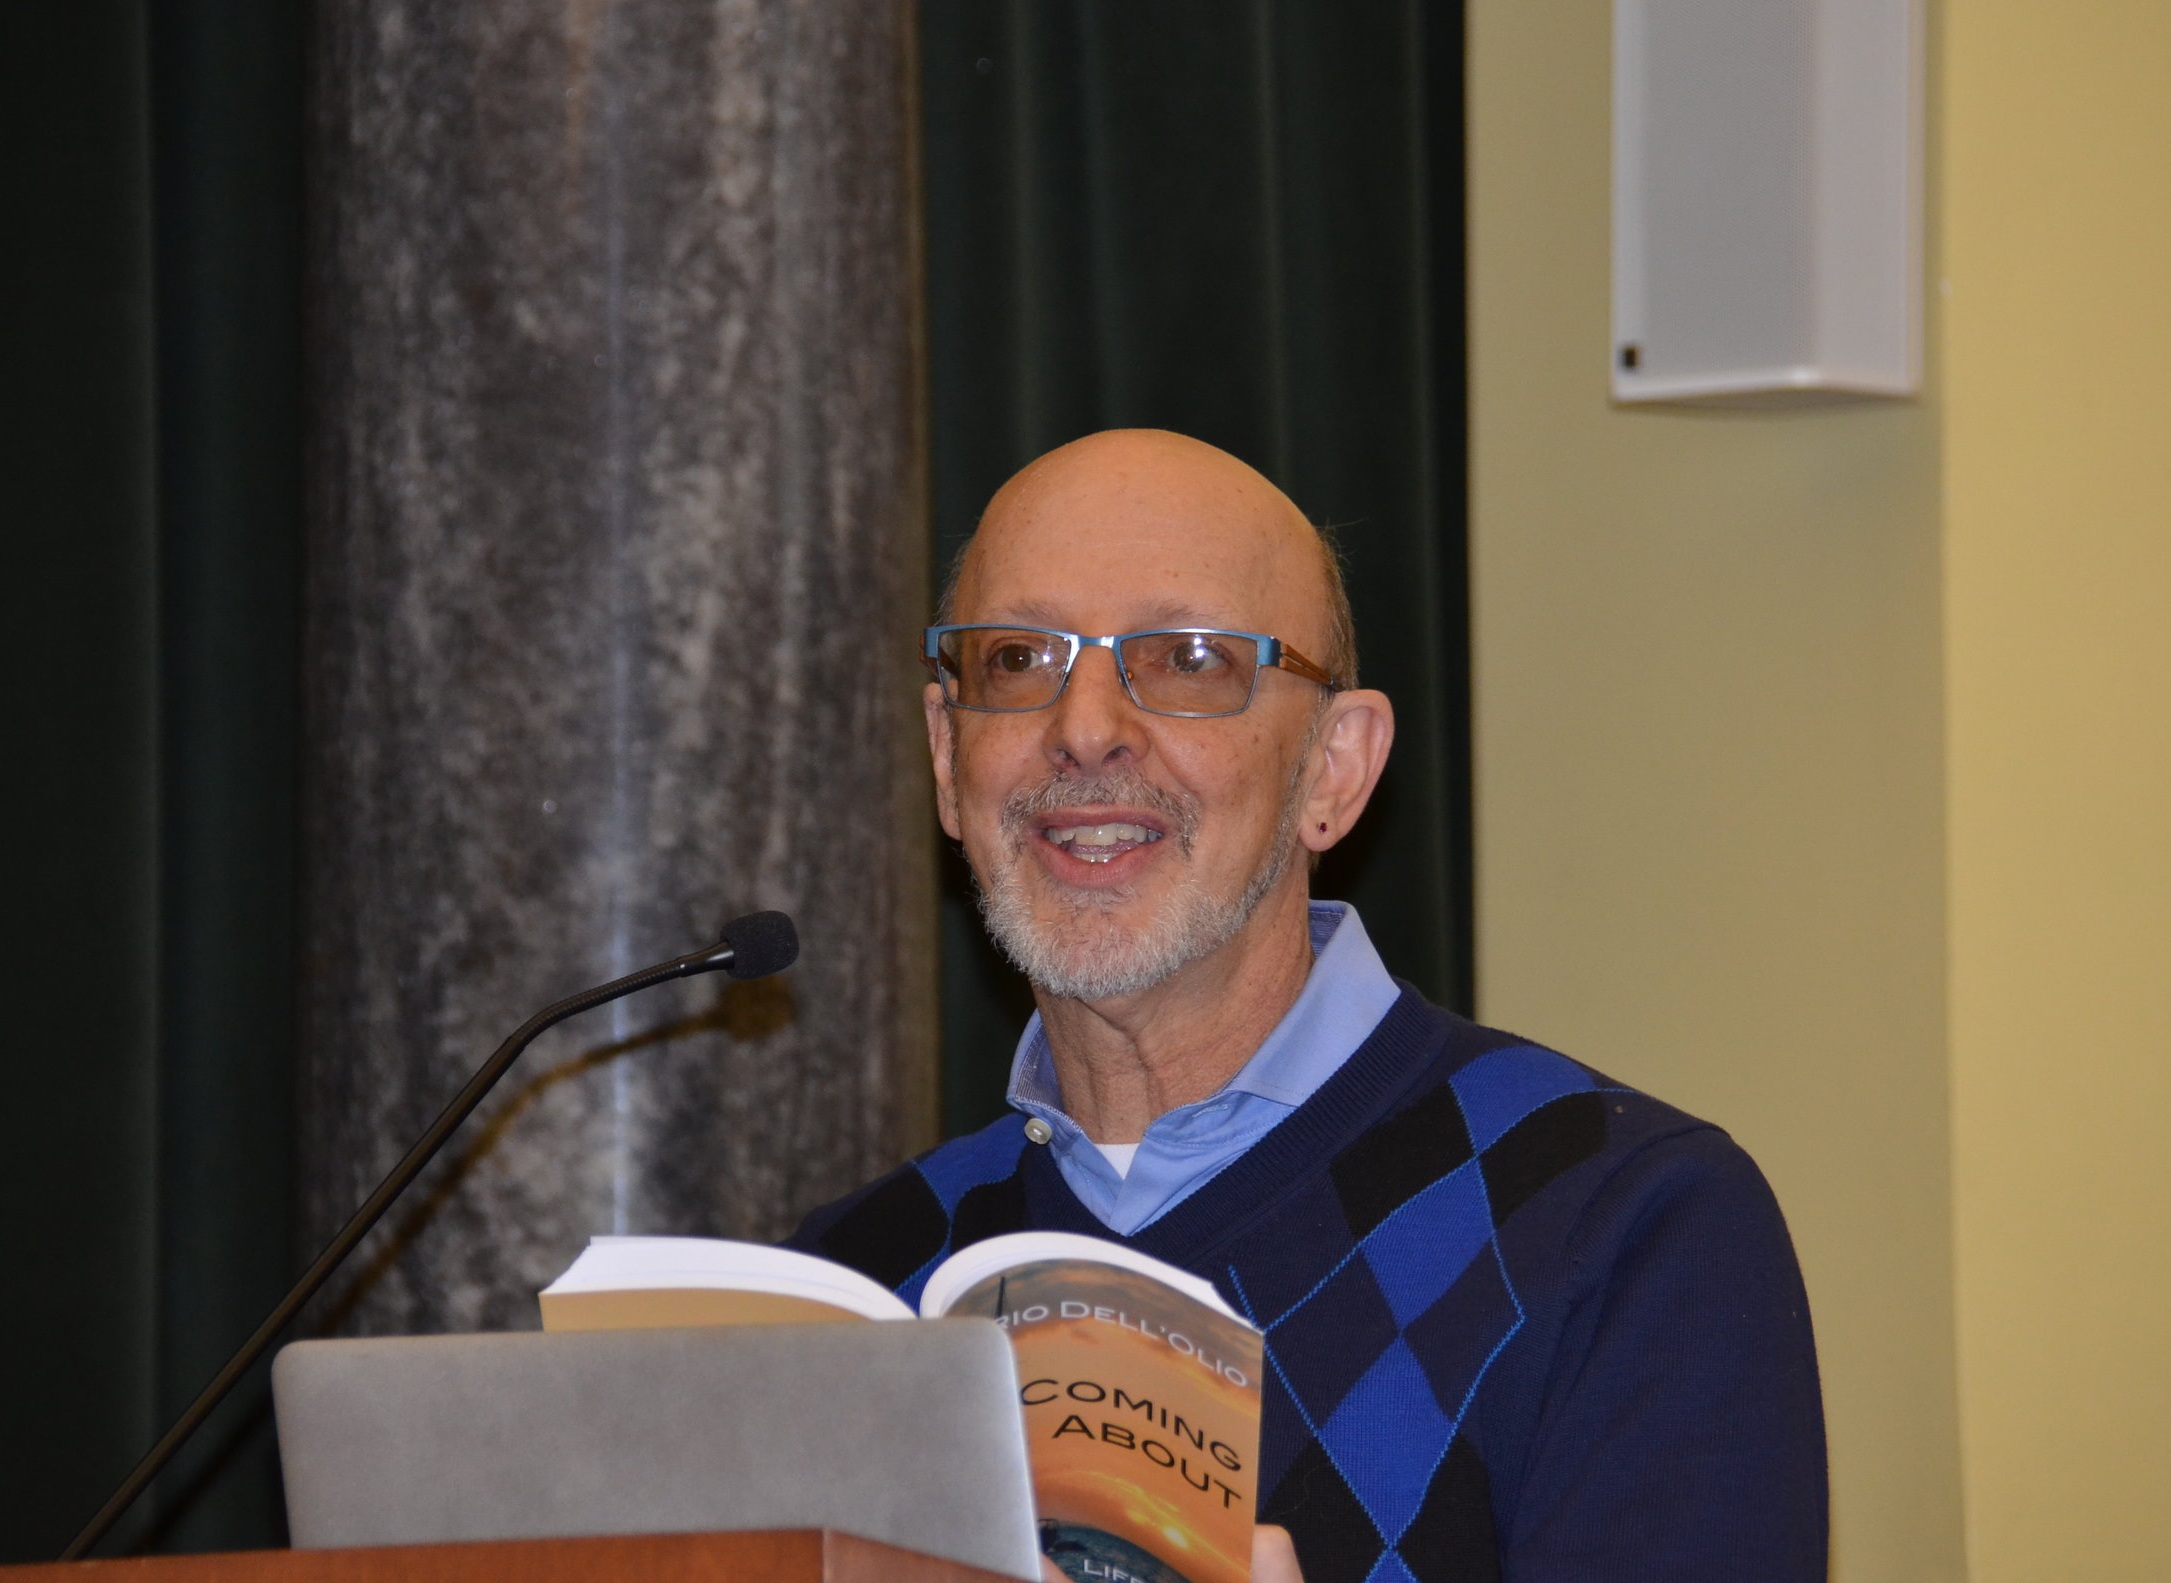 Book Reading at the Stratford Public Library in Connecticut